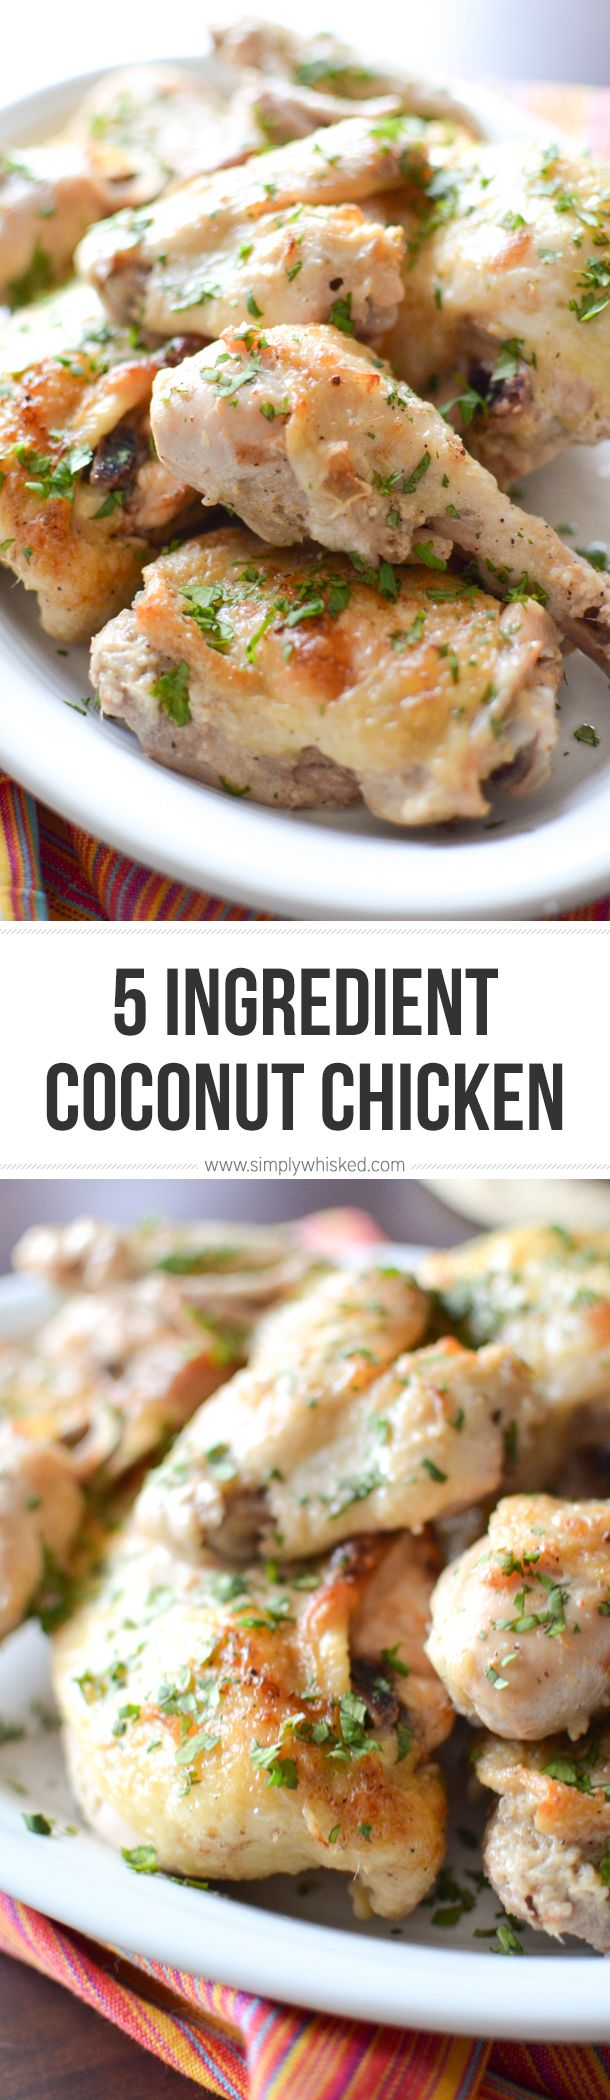 5 Ingredient Coconut Chicken | simplywhisked.com